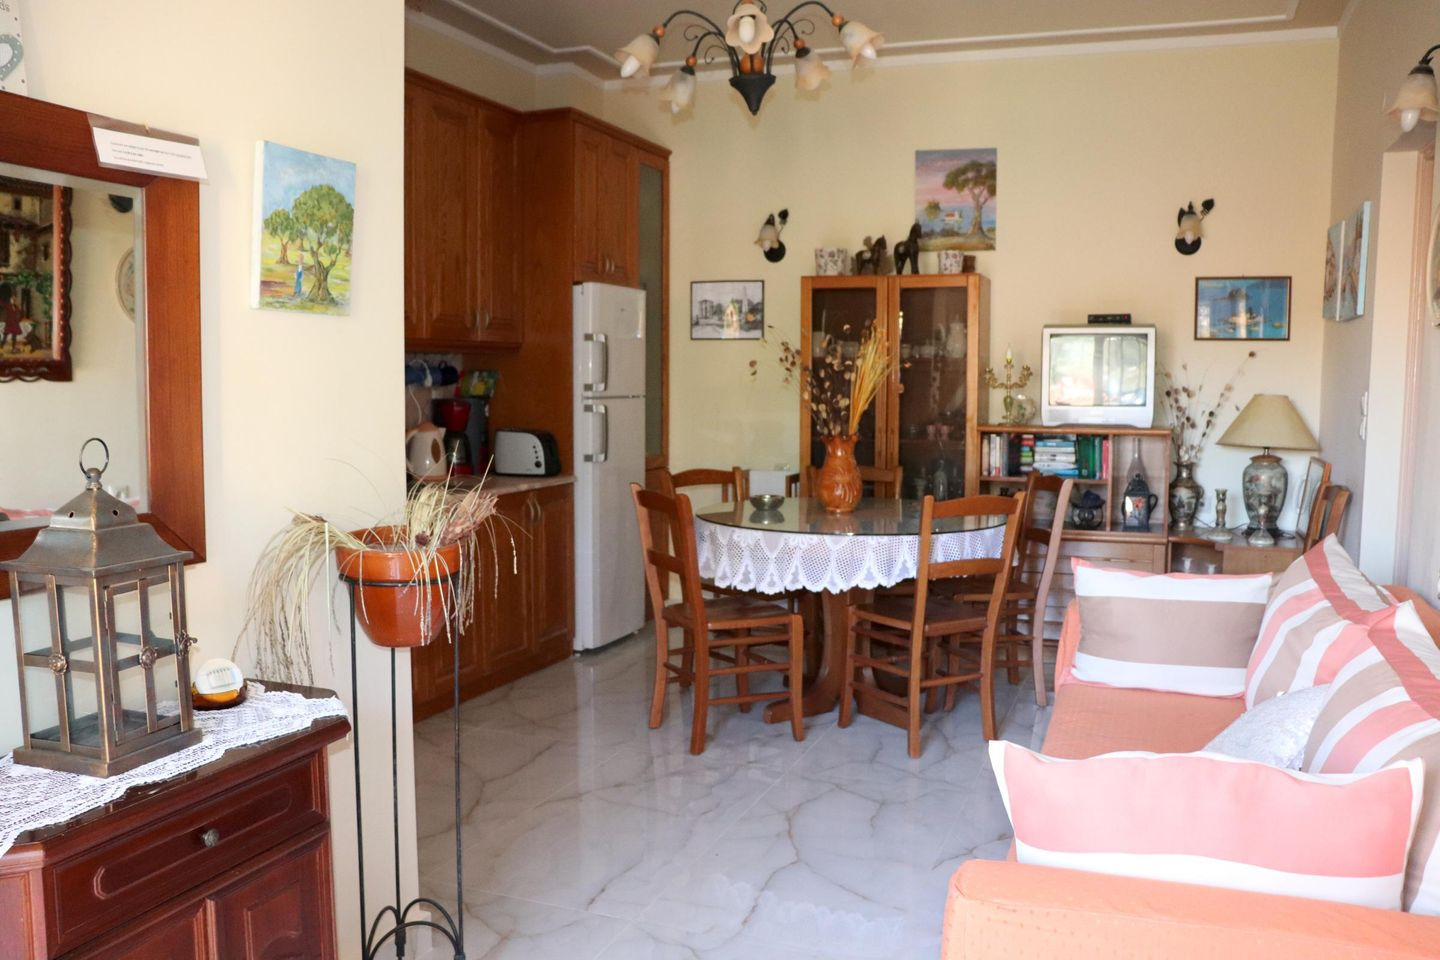 Holiday apartment ELENI (167853), Paramonas, Corfu, Ionian Islands, Greece, picture 8